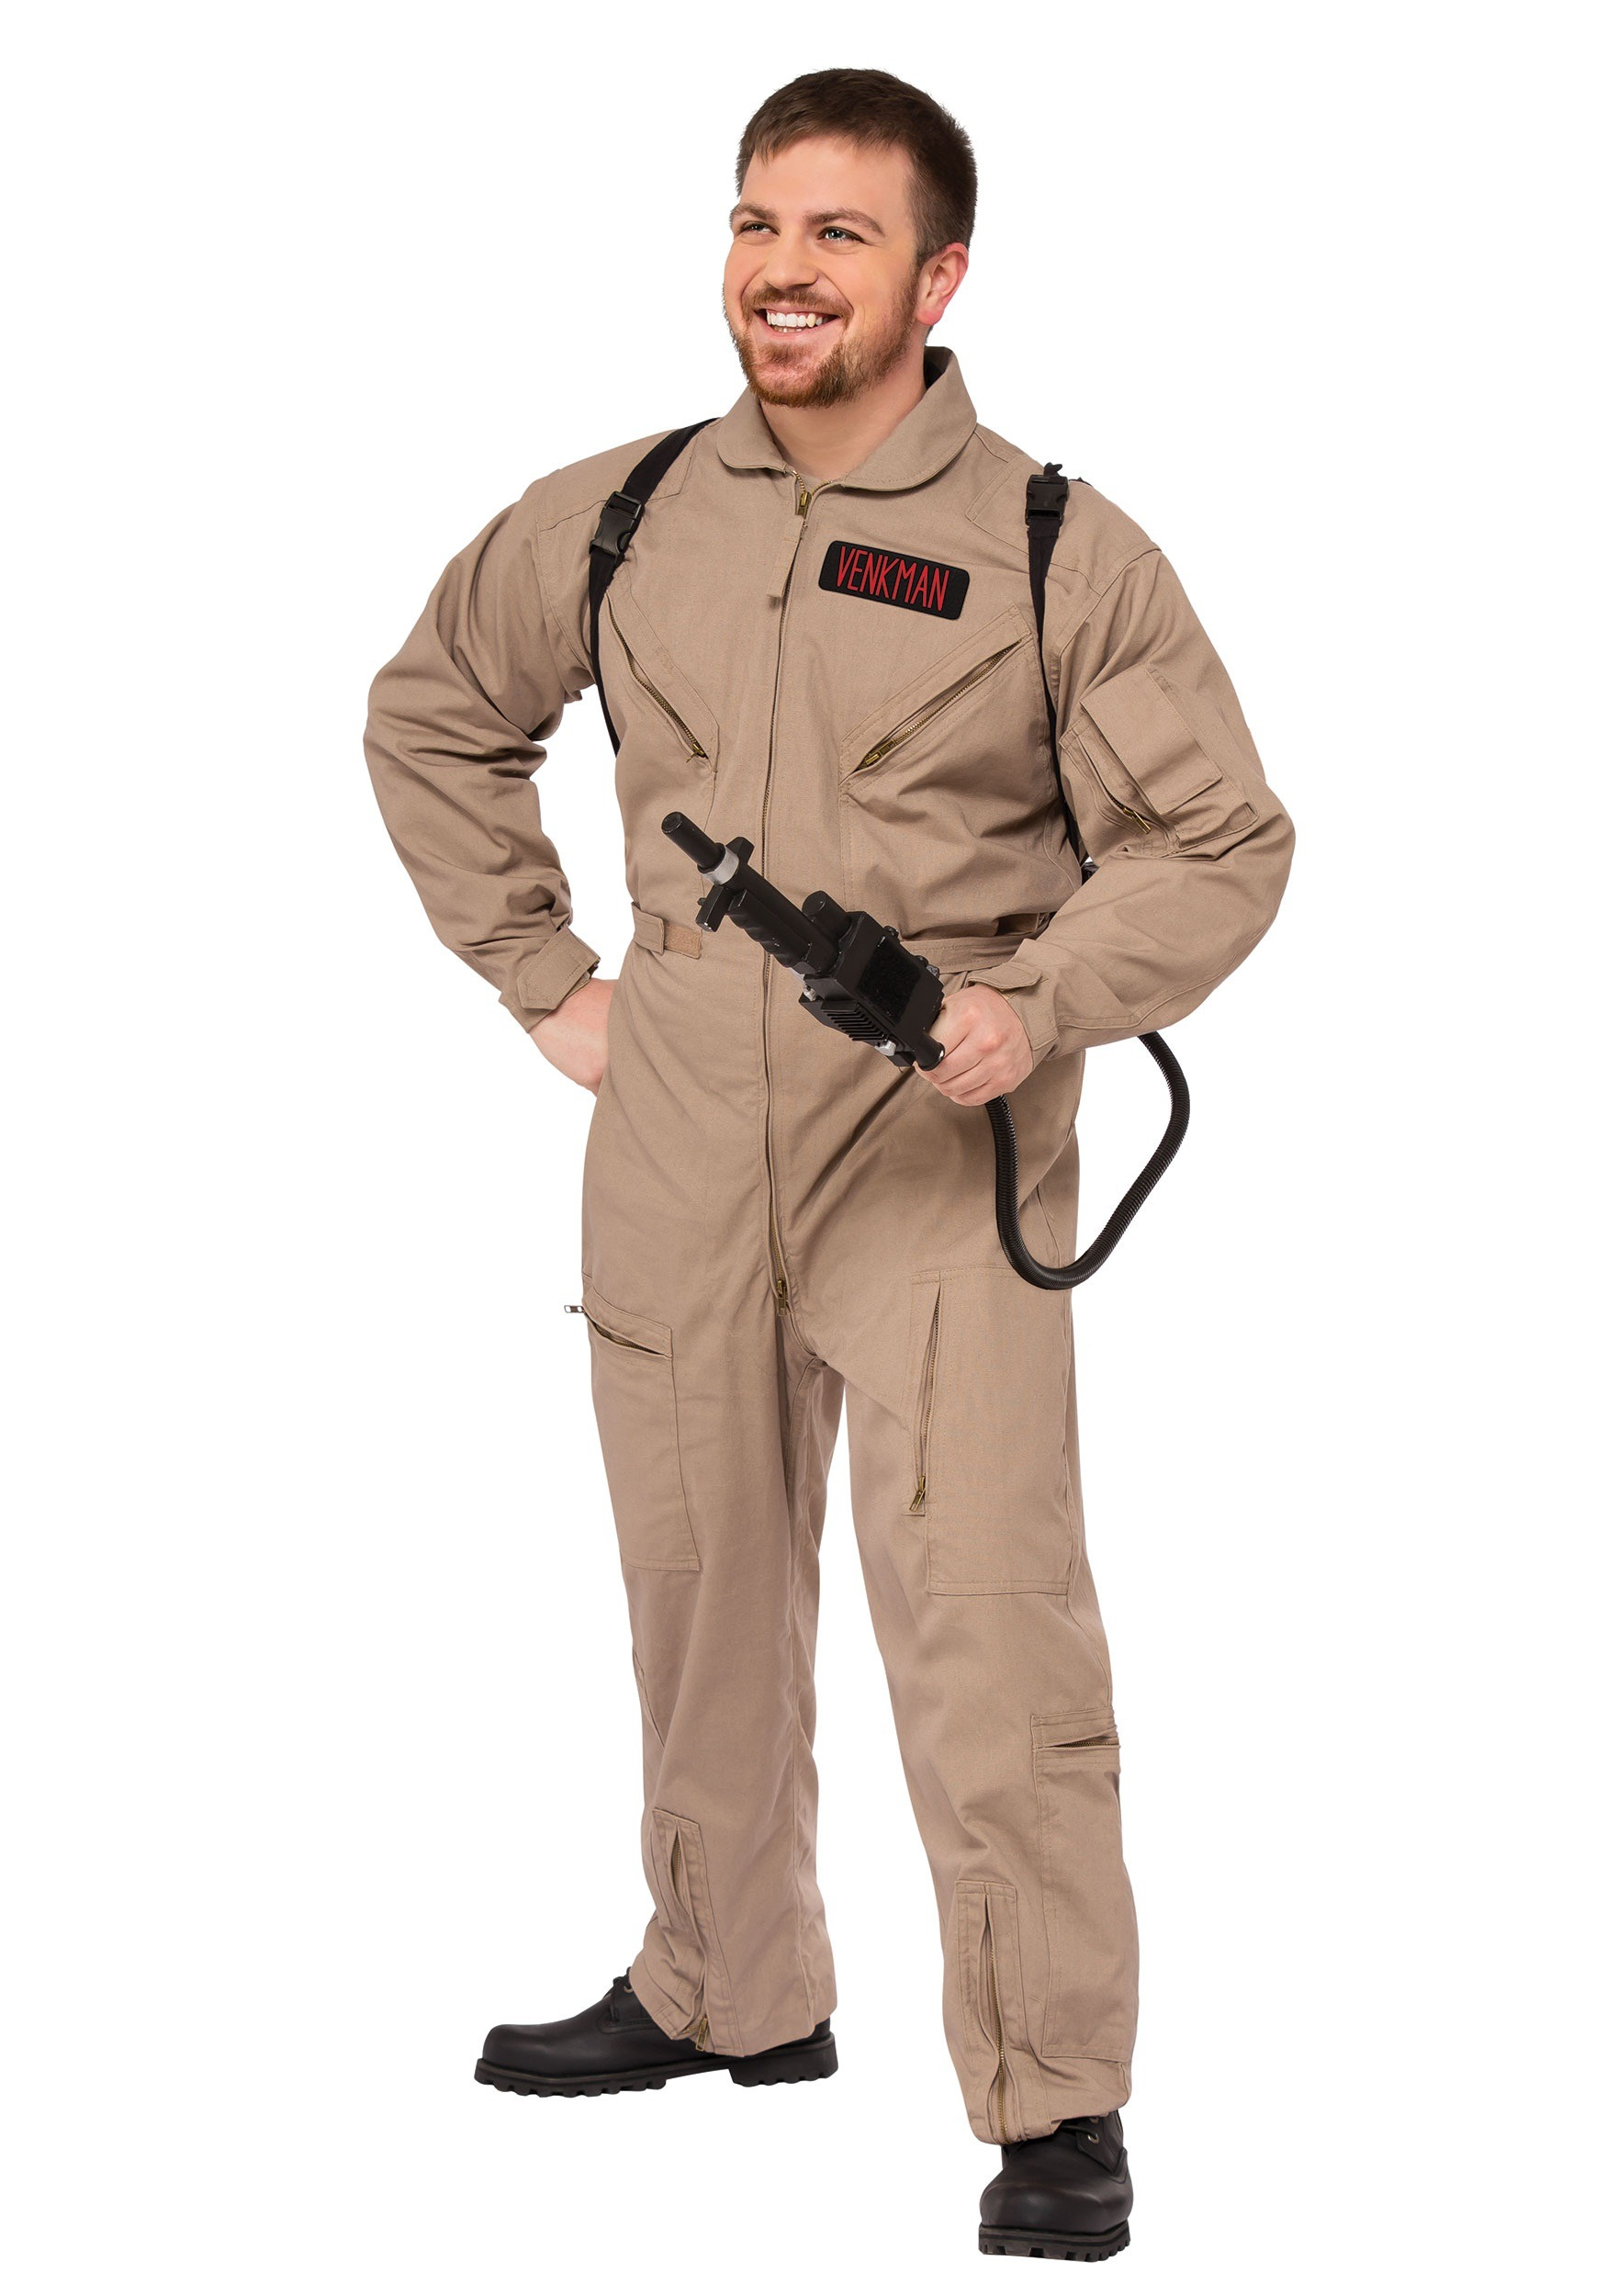 Plus Size Ghostbusters Grand Heritage Costume RU17994